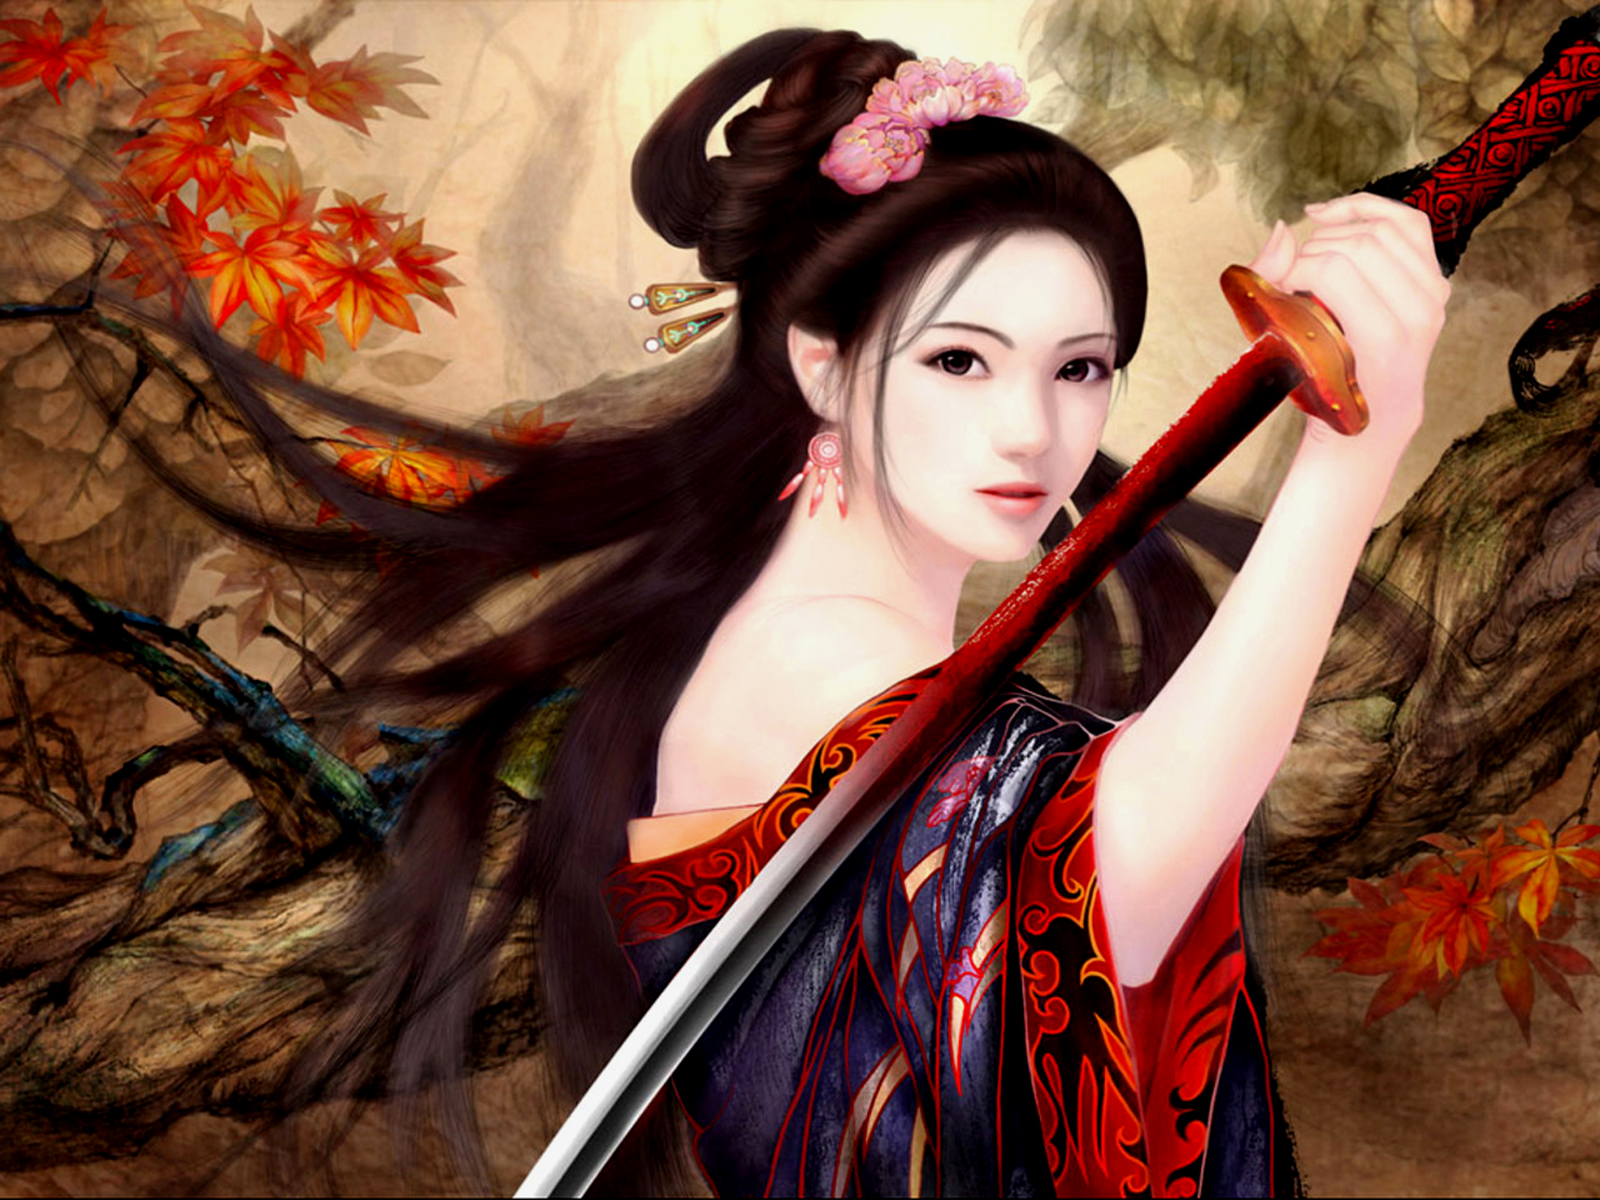 Fantasy - Women Warrior  Daisy Fighter Girl Female Samurai Wallpaper